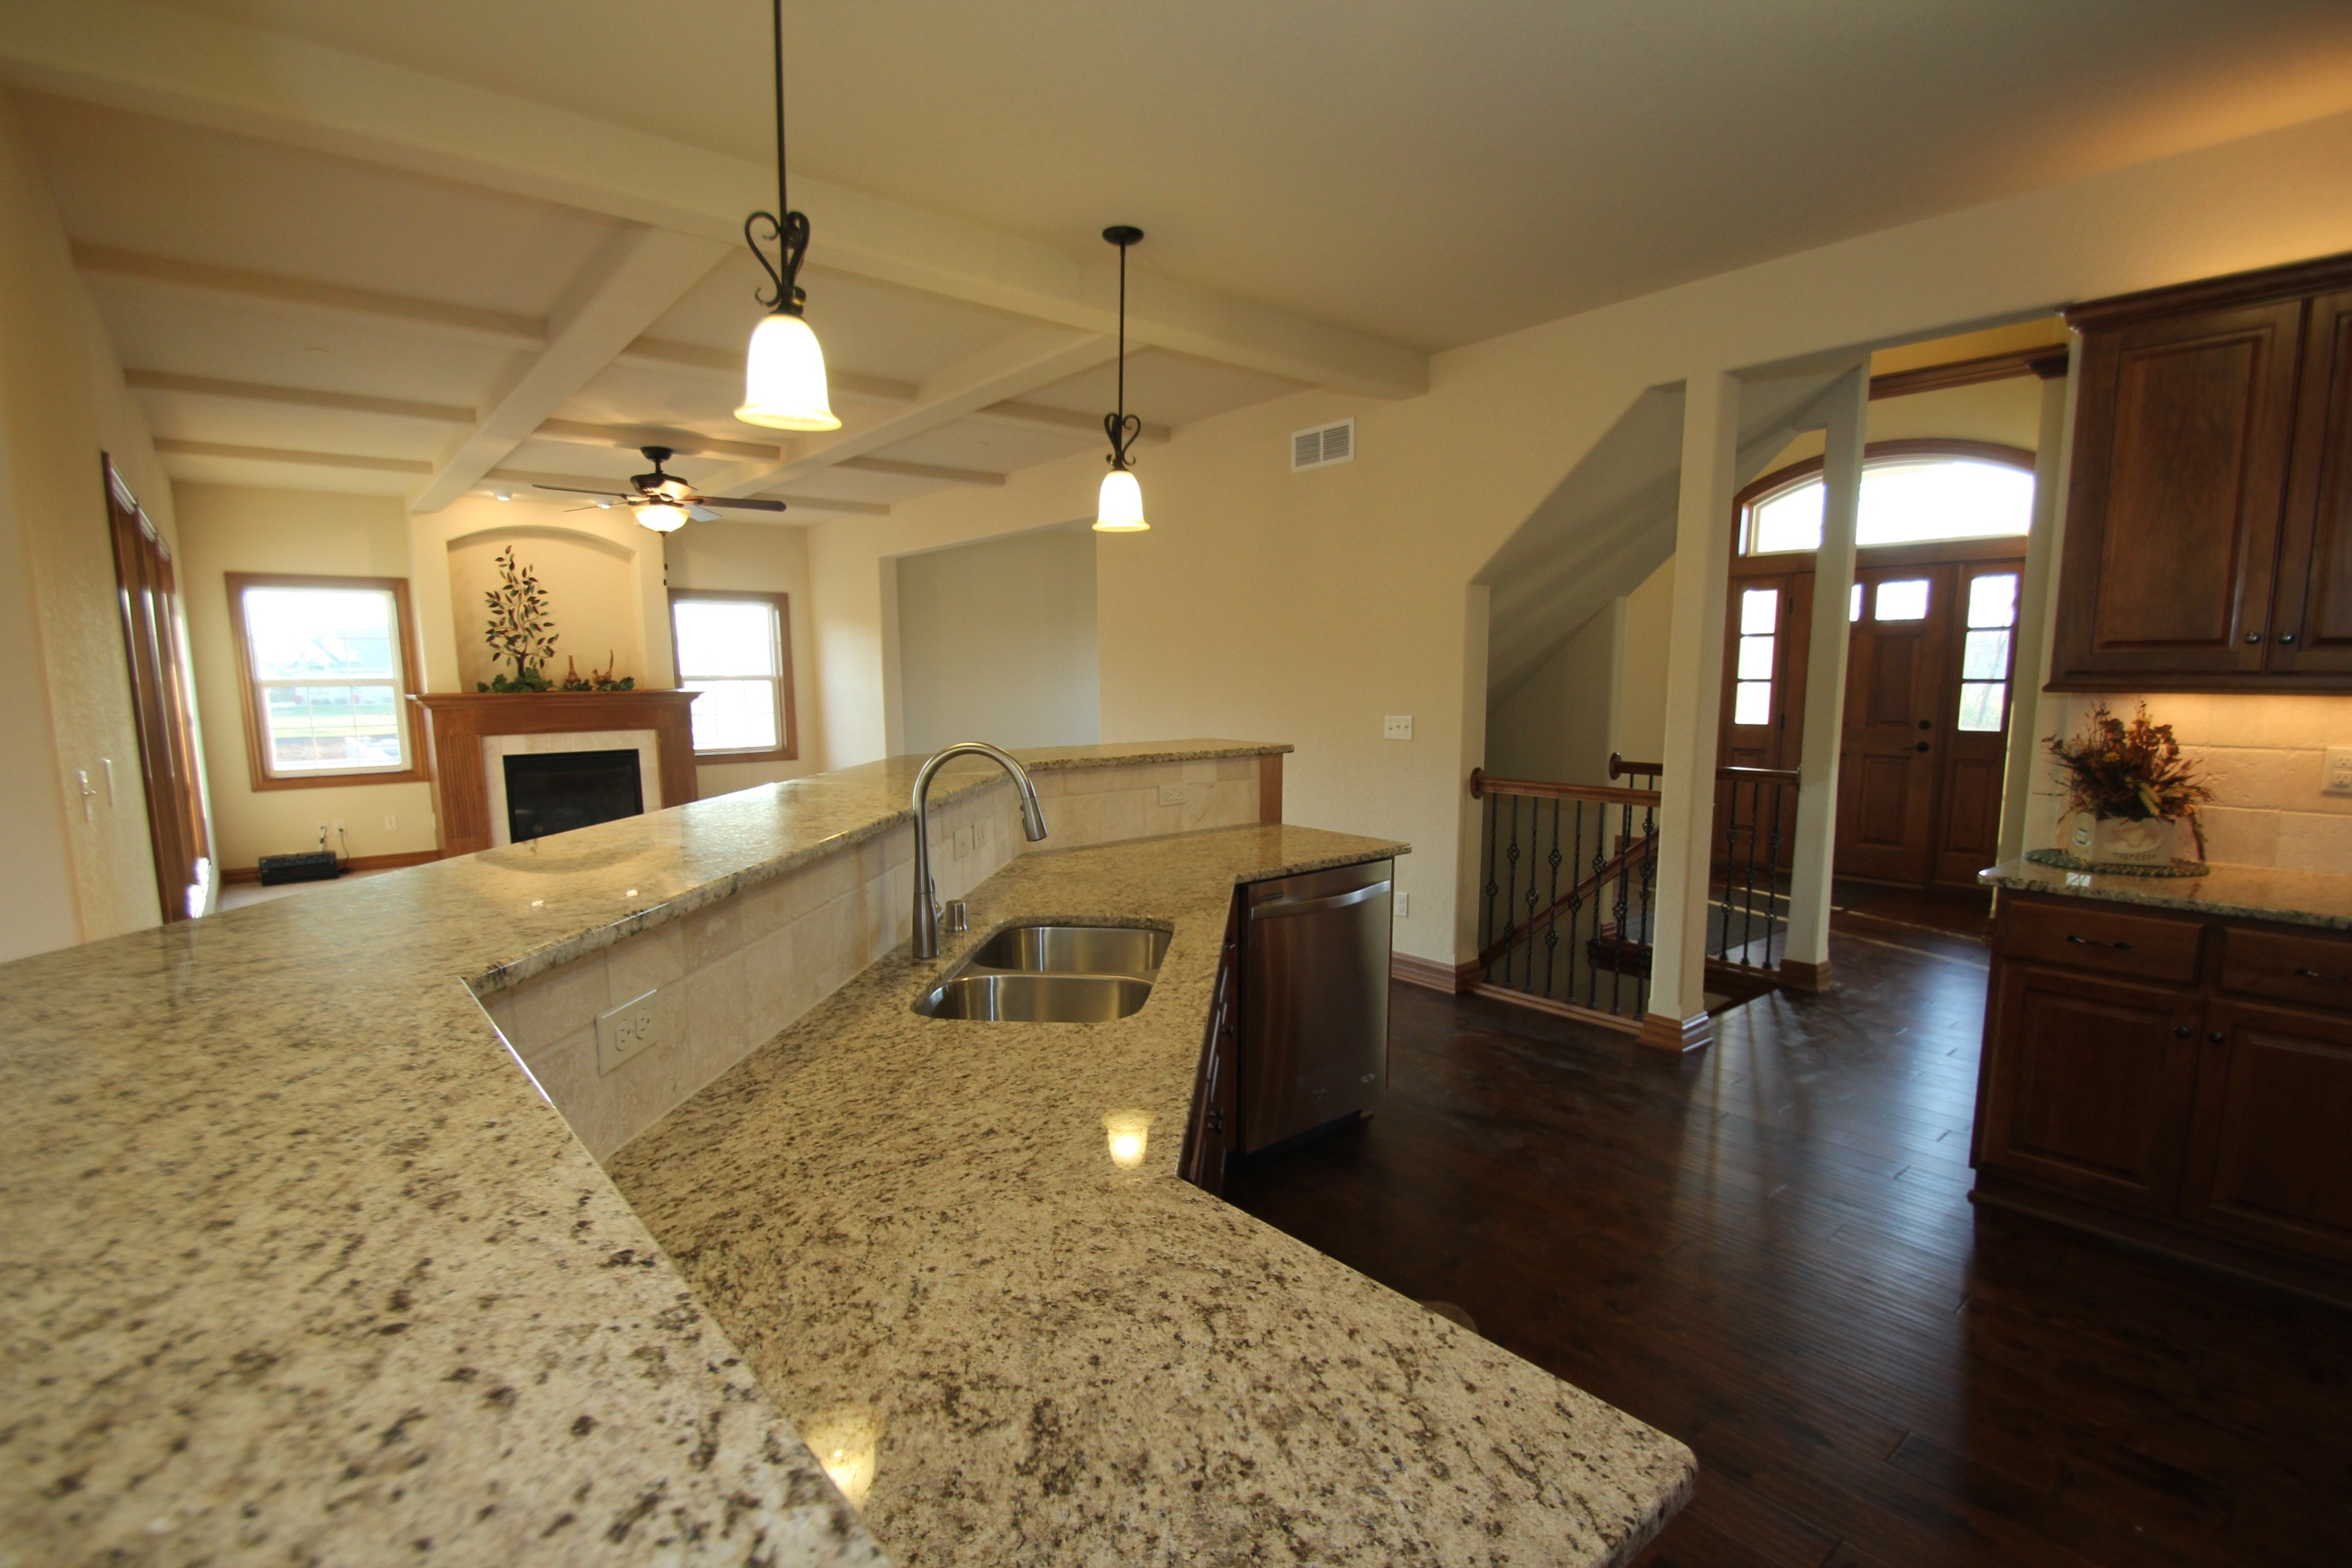 View of Entryway from Kitchen Island